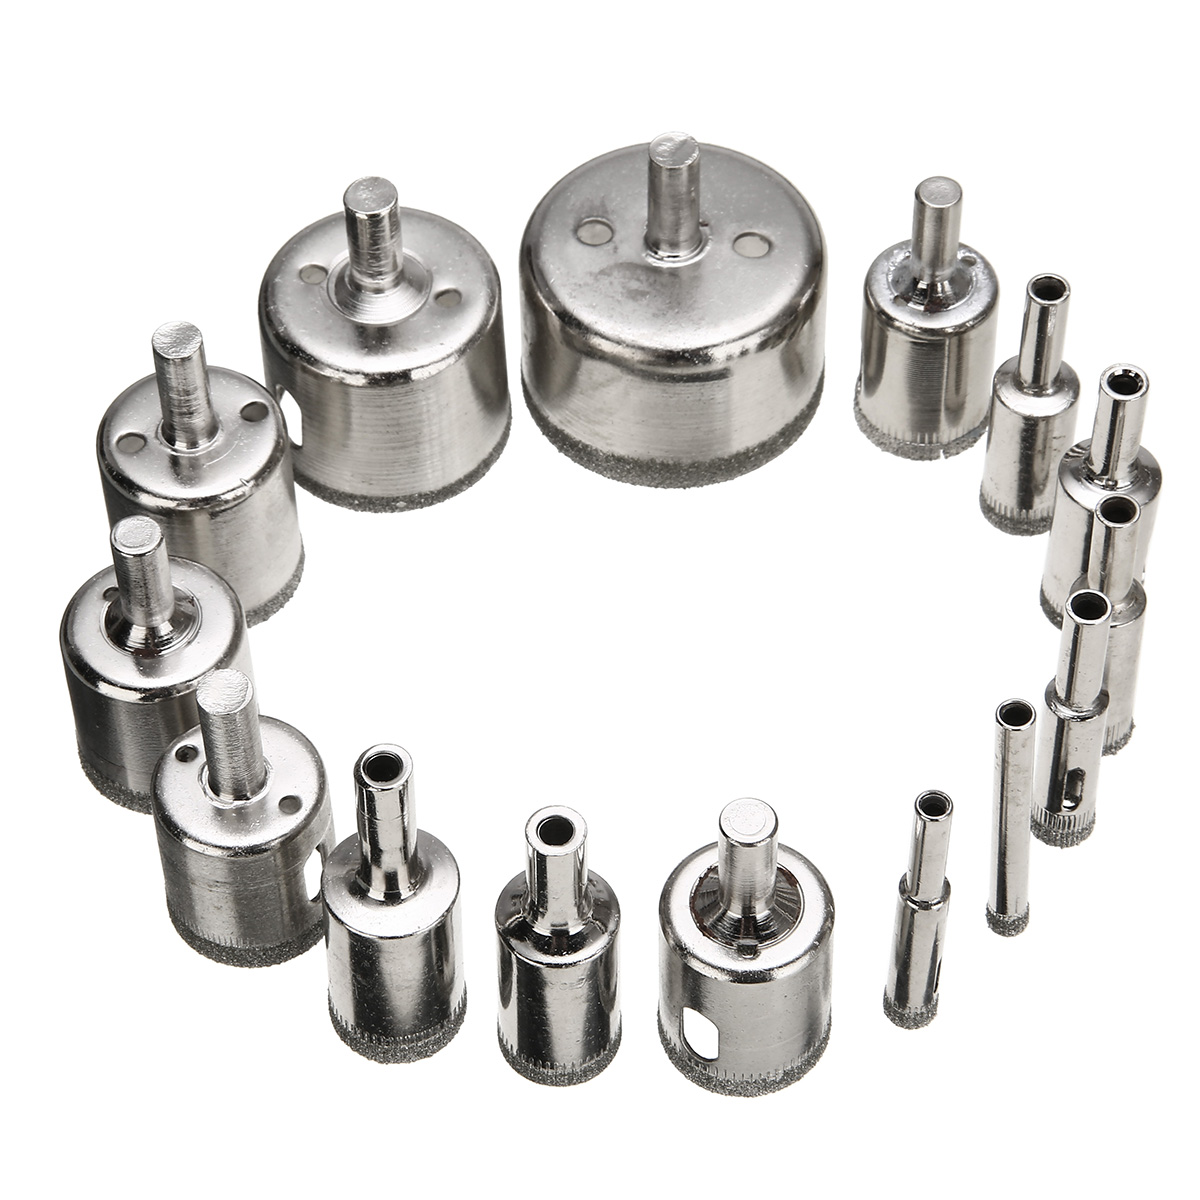 15PCS Hole Saw Drill Diamond Coated Drill Bits Set Tile Marble Glass Ceramic Holesaw 6mm-50mm Hand Tools laura mercier lm 14 7ml